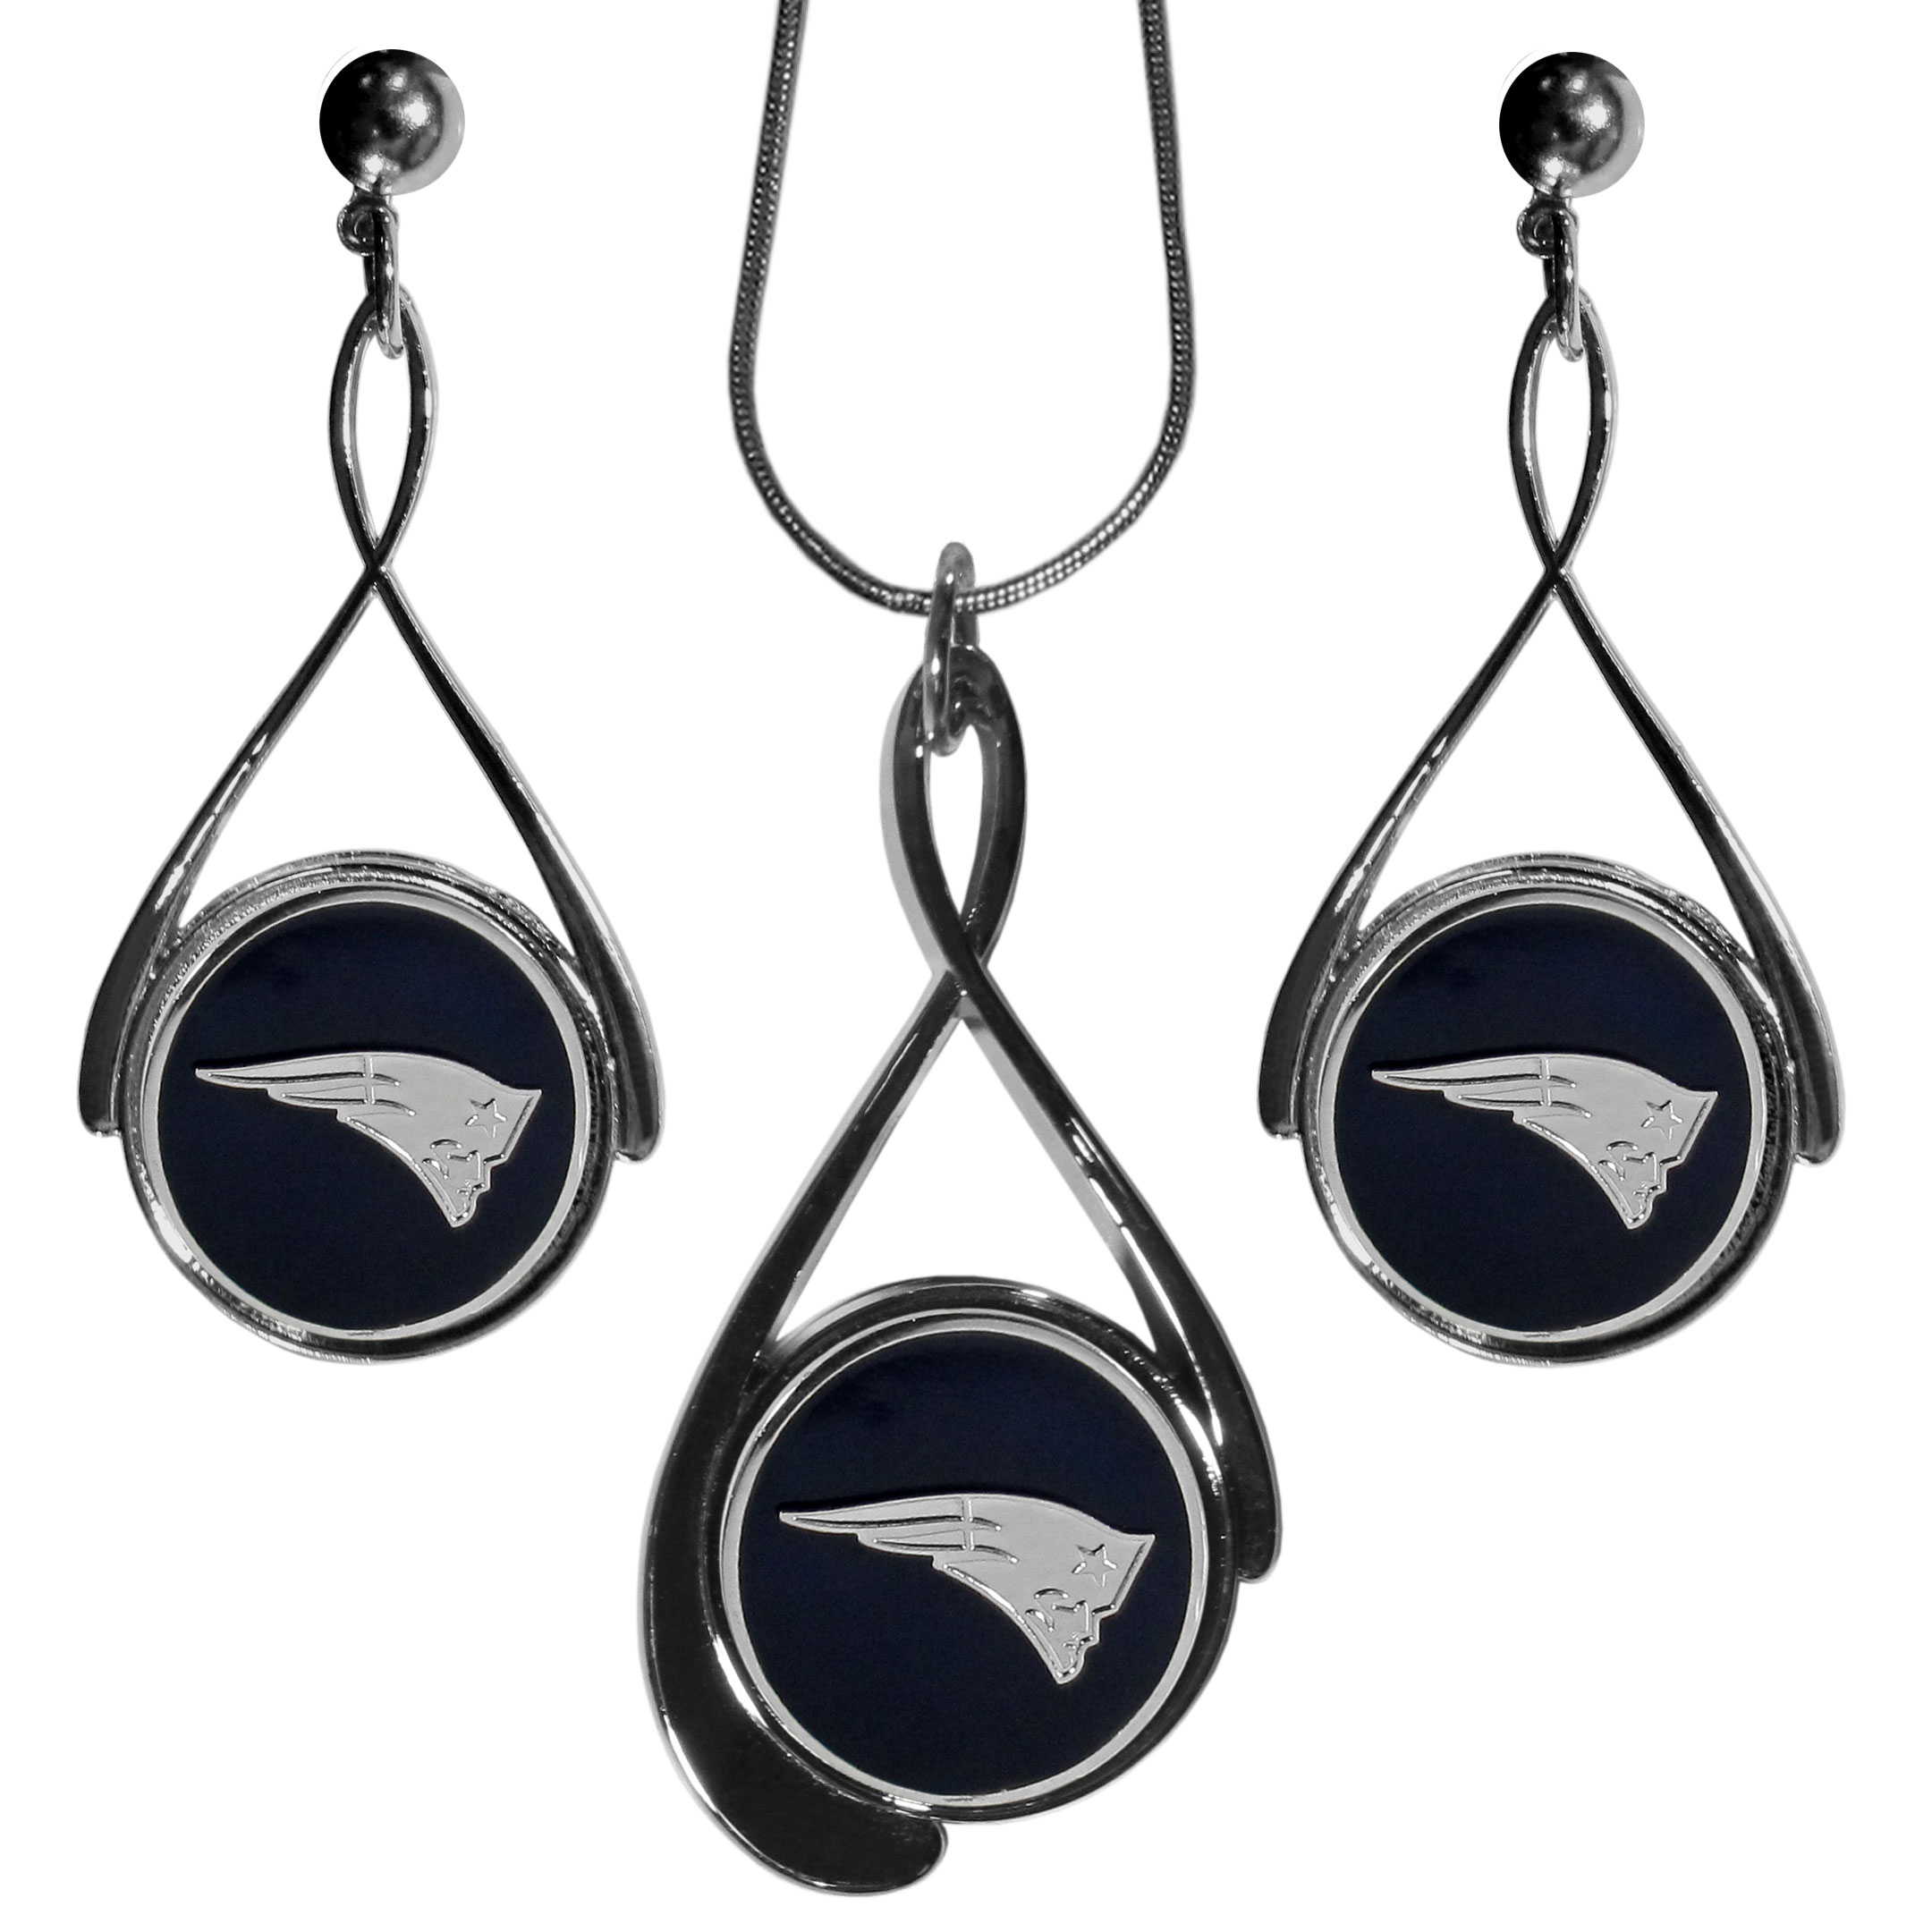 New England Patriots Tear Drop Jewelry Set - Our New England Patriots tear drop earrings and necklace set is a sporty twist on the classic tear drop style. The high polish dangle earrings feature the team logo in raised metal against the primary team color inset into the 2 inch tear drop setting paired with a beautiful matching necklace with a 18 inch snake chain with 2 inch extendor. The earrings have hypoallergenic stud posts.